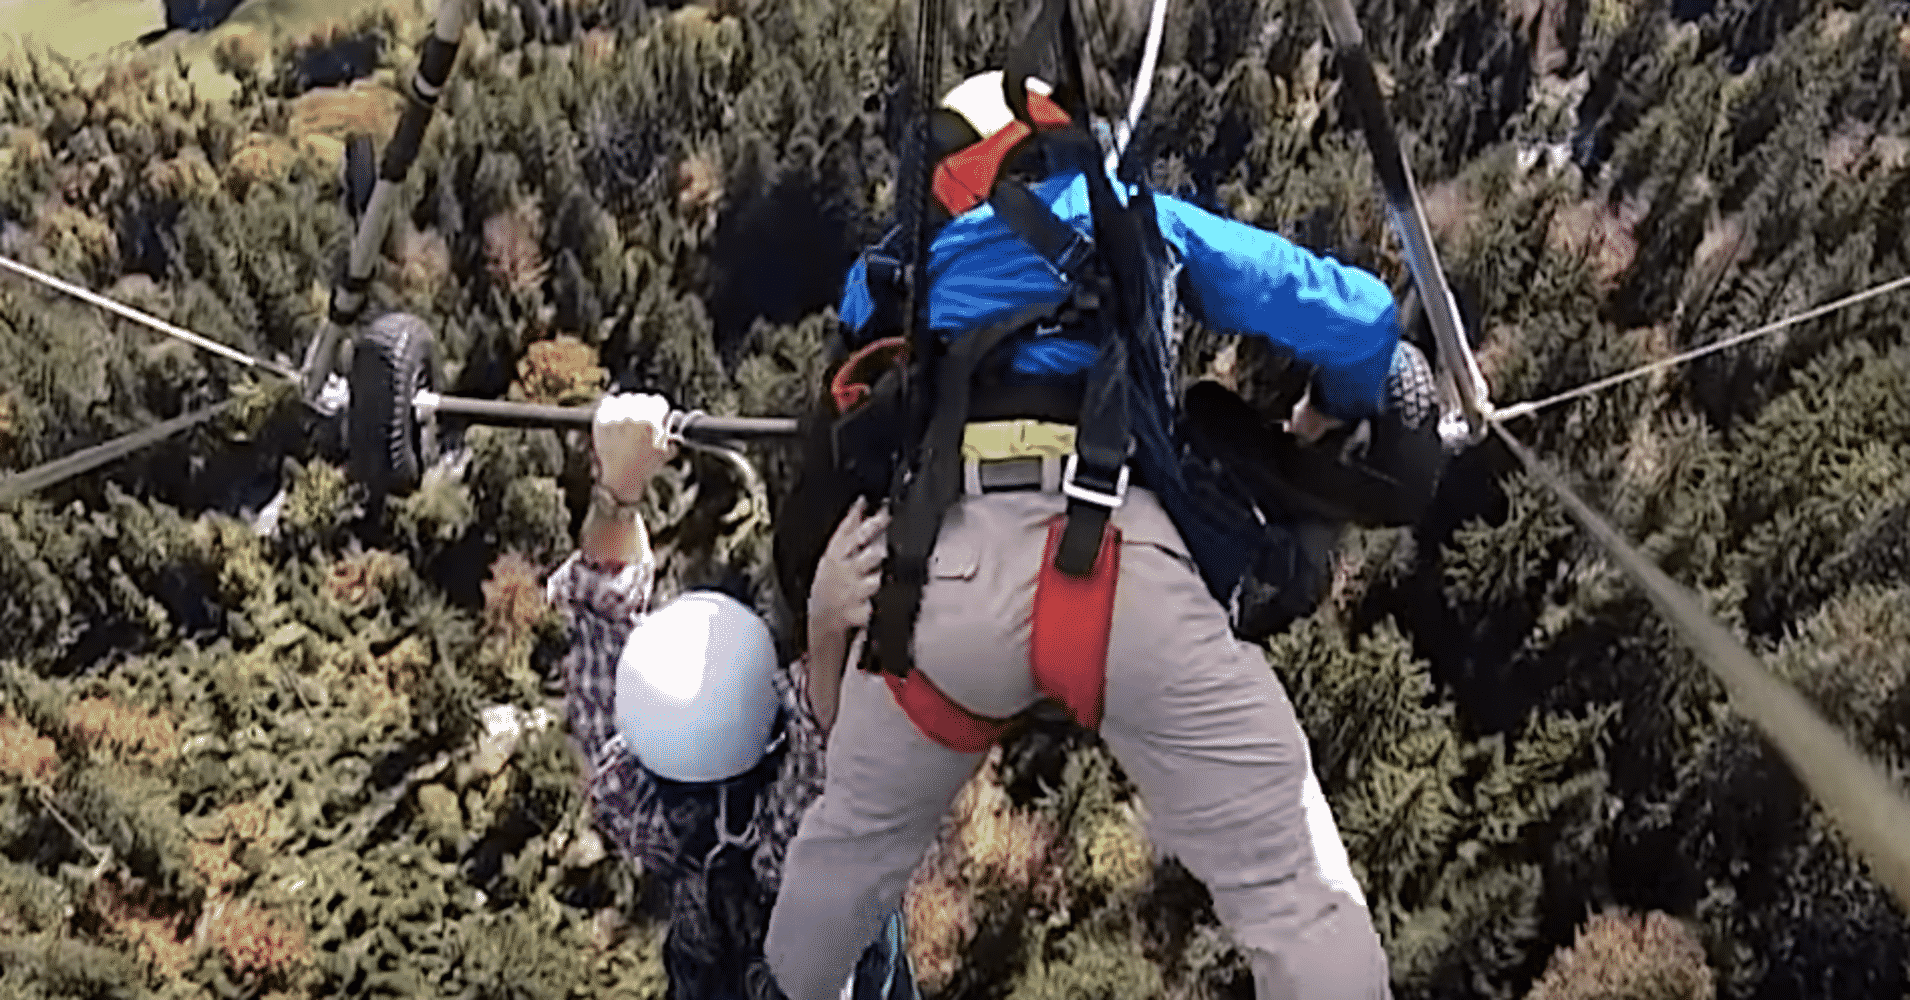 First-Time Hang Glider Hangs On For Dear Life Without Safety Harness